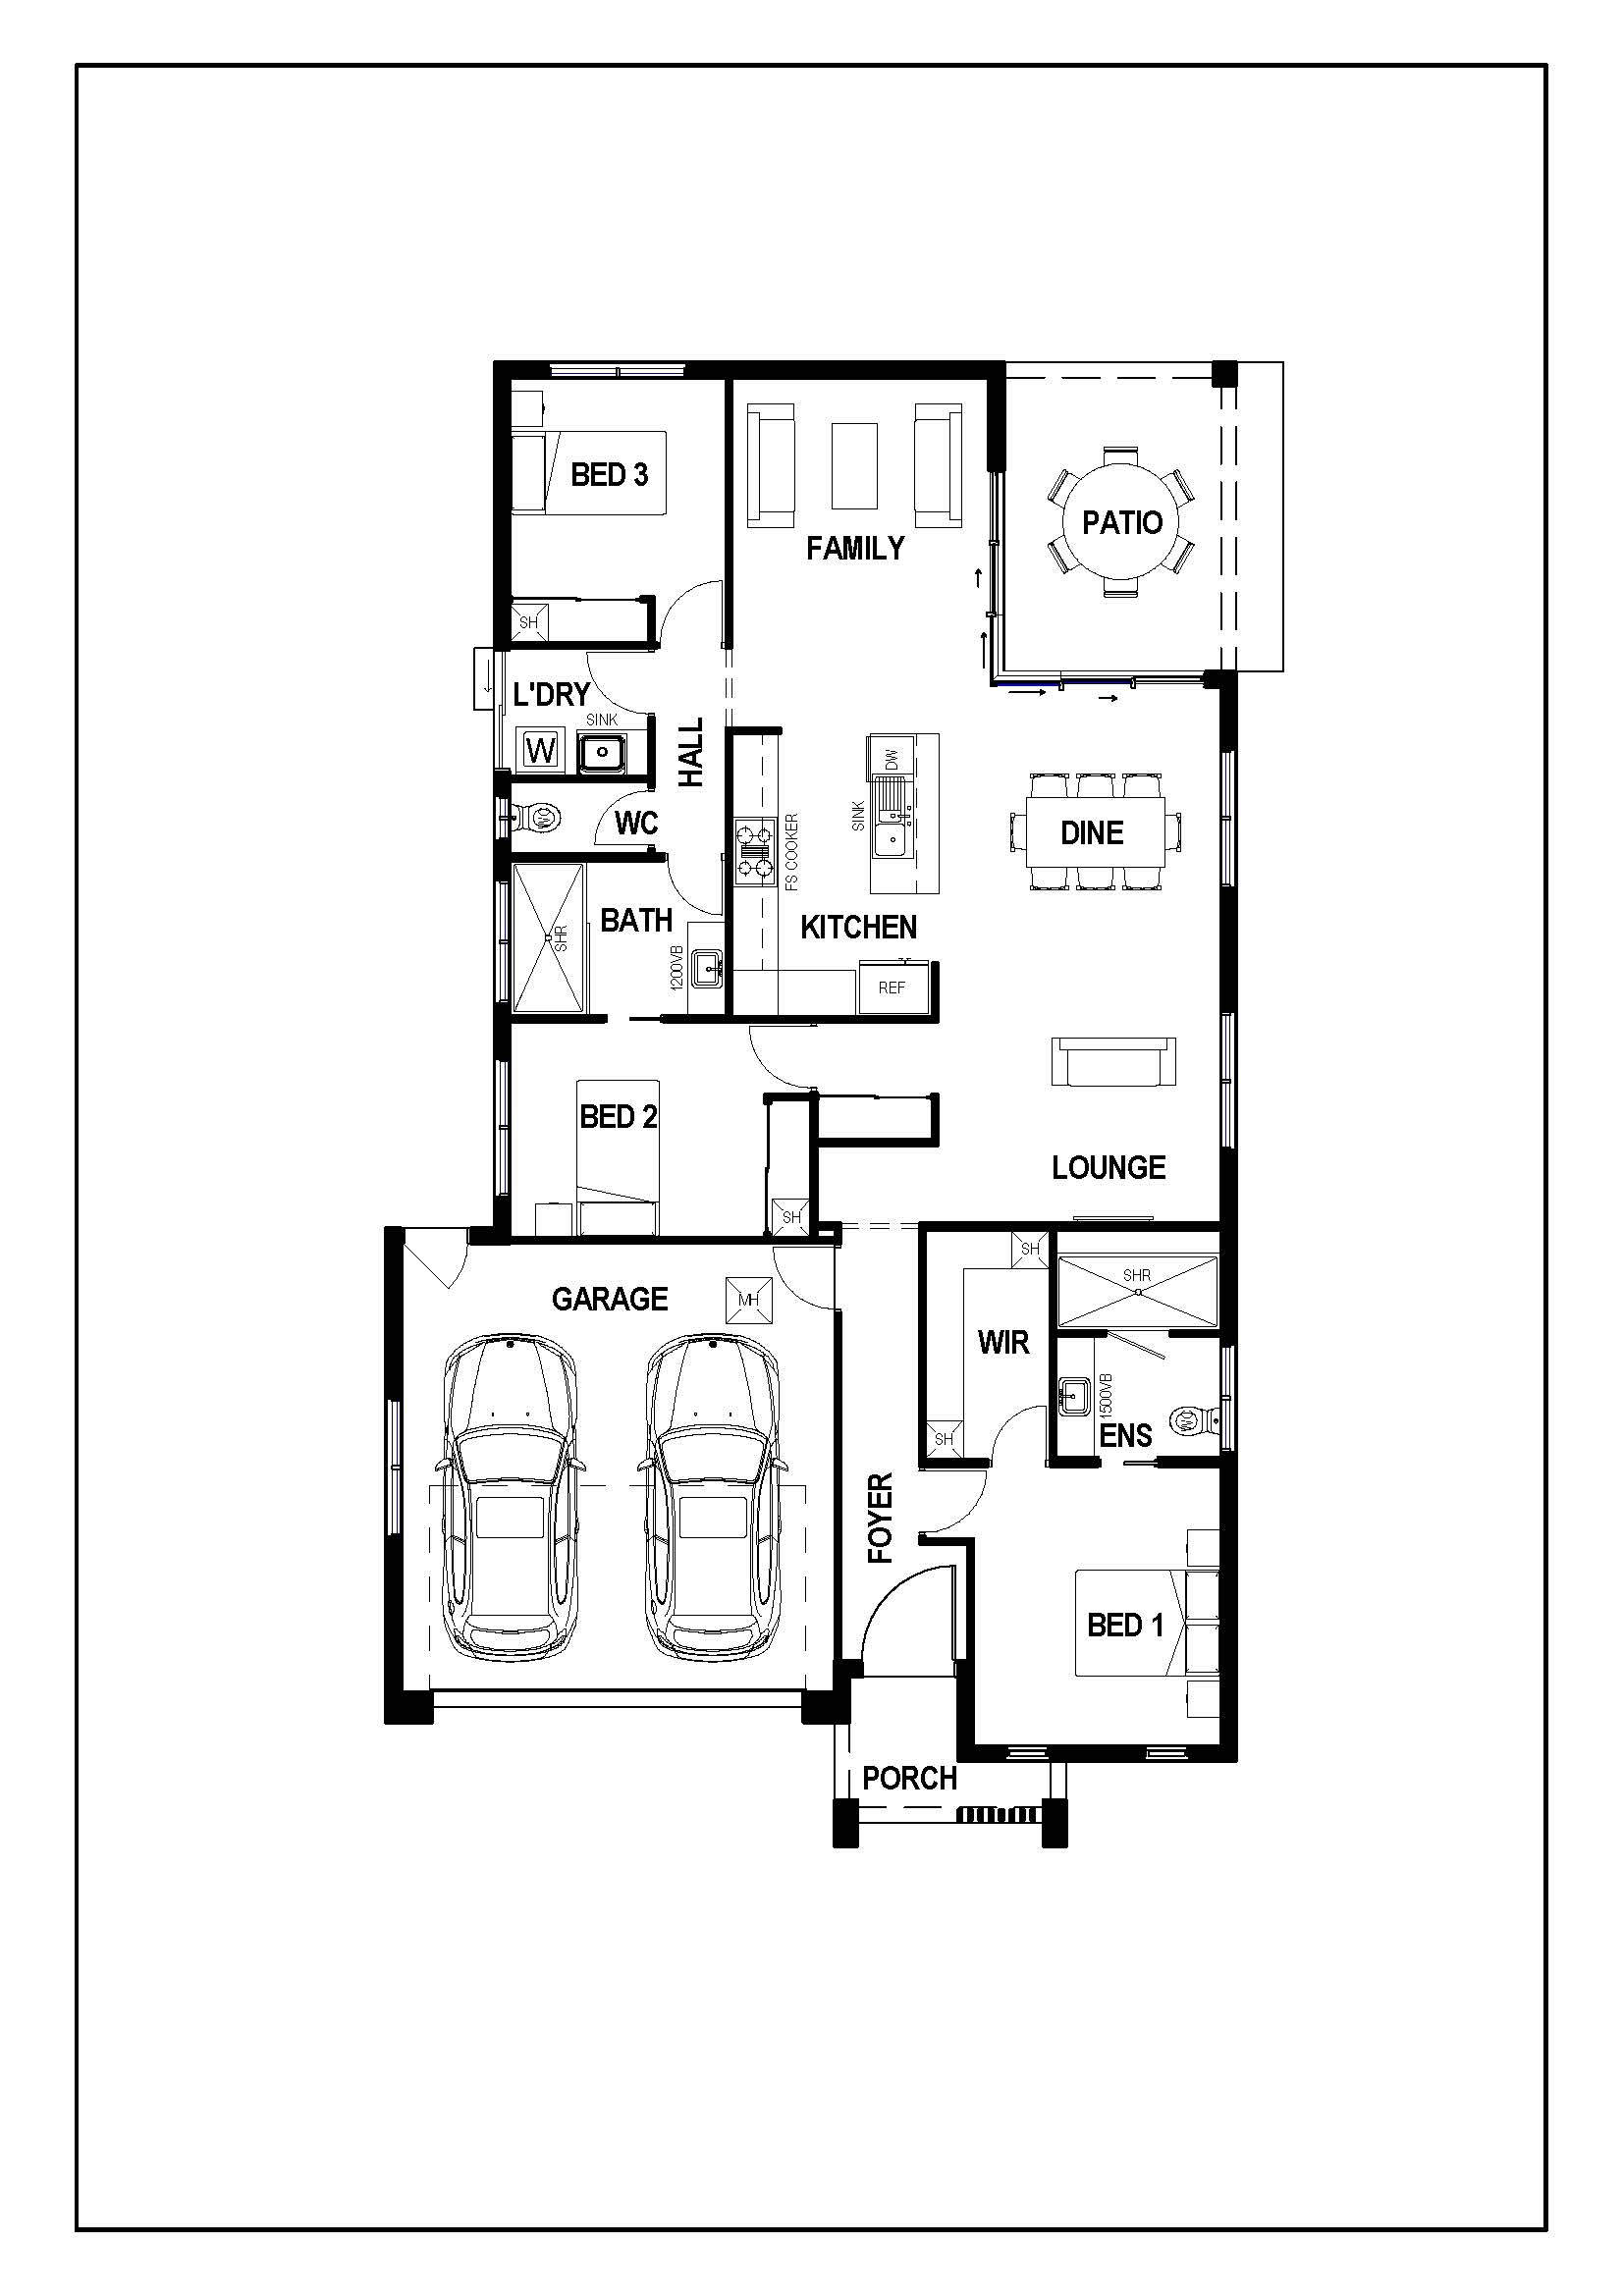 Atlanta Floorplan.jpg